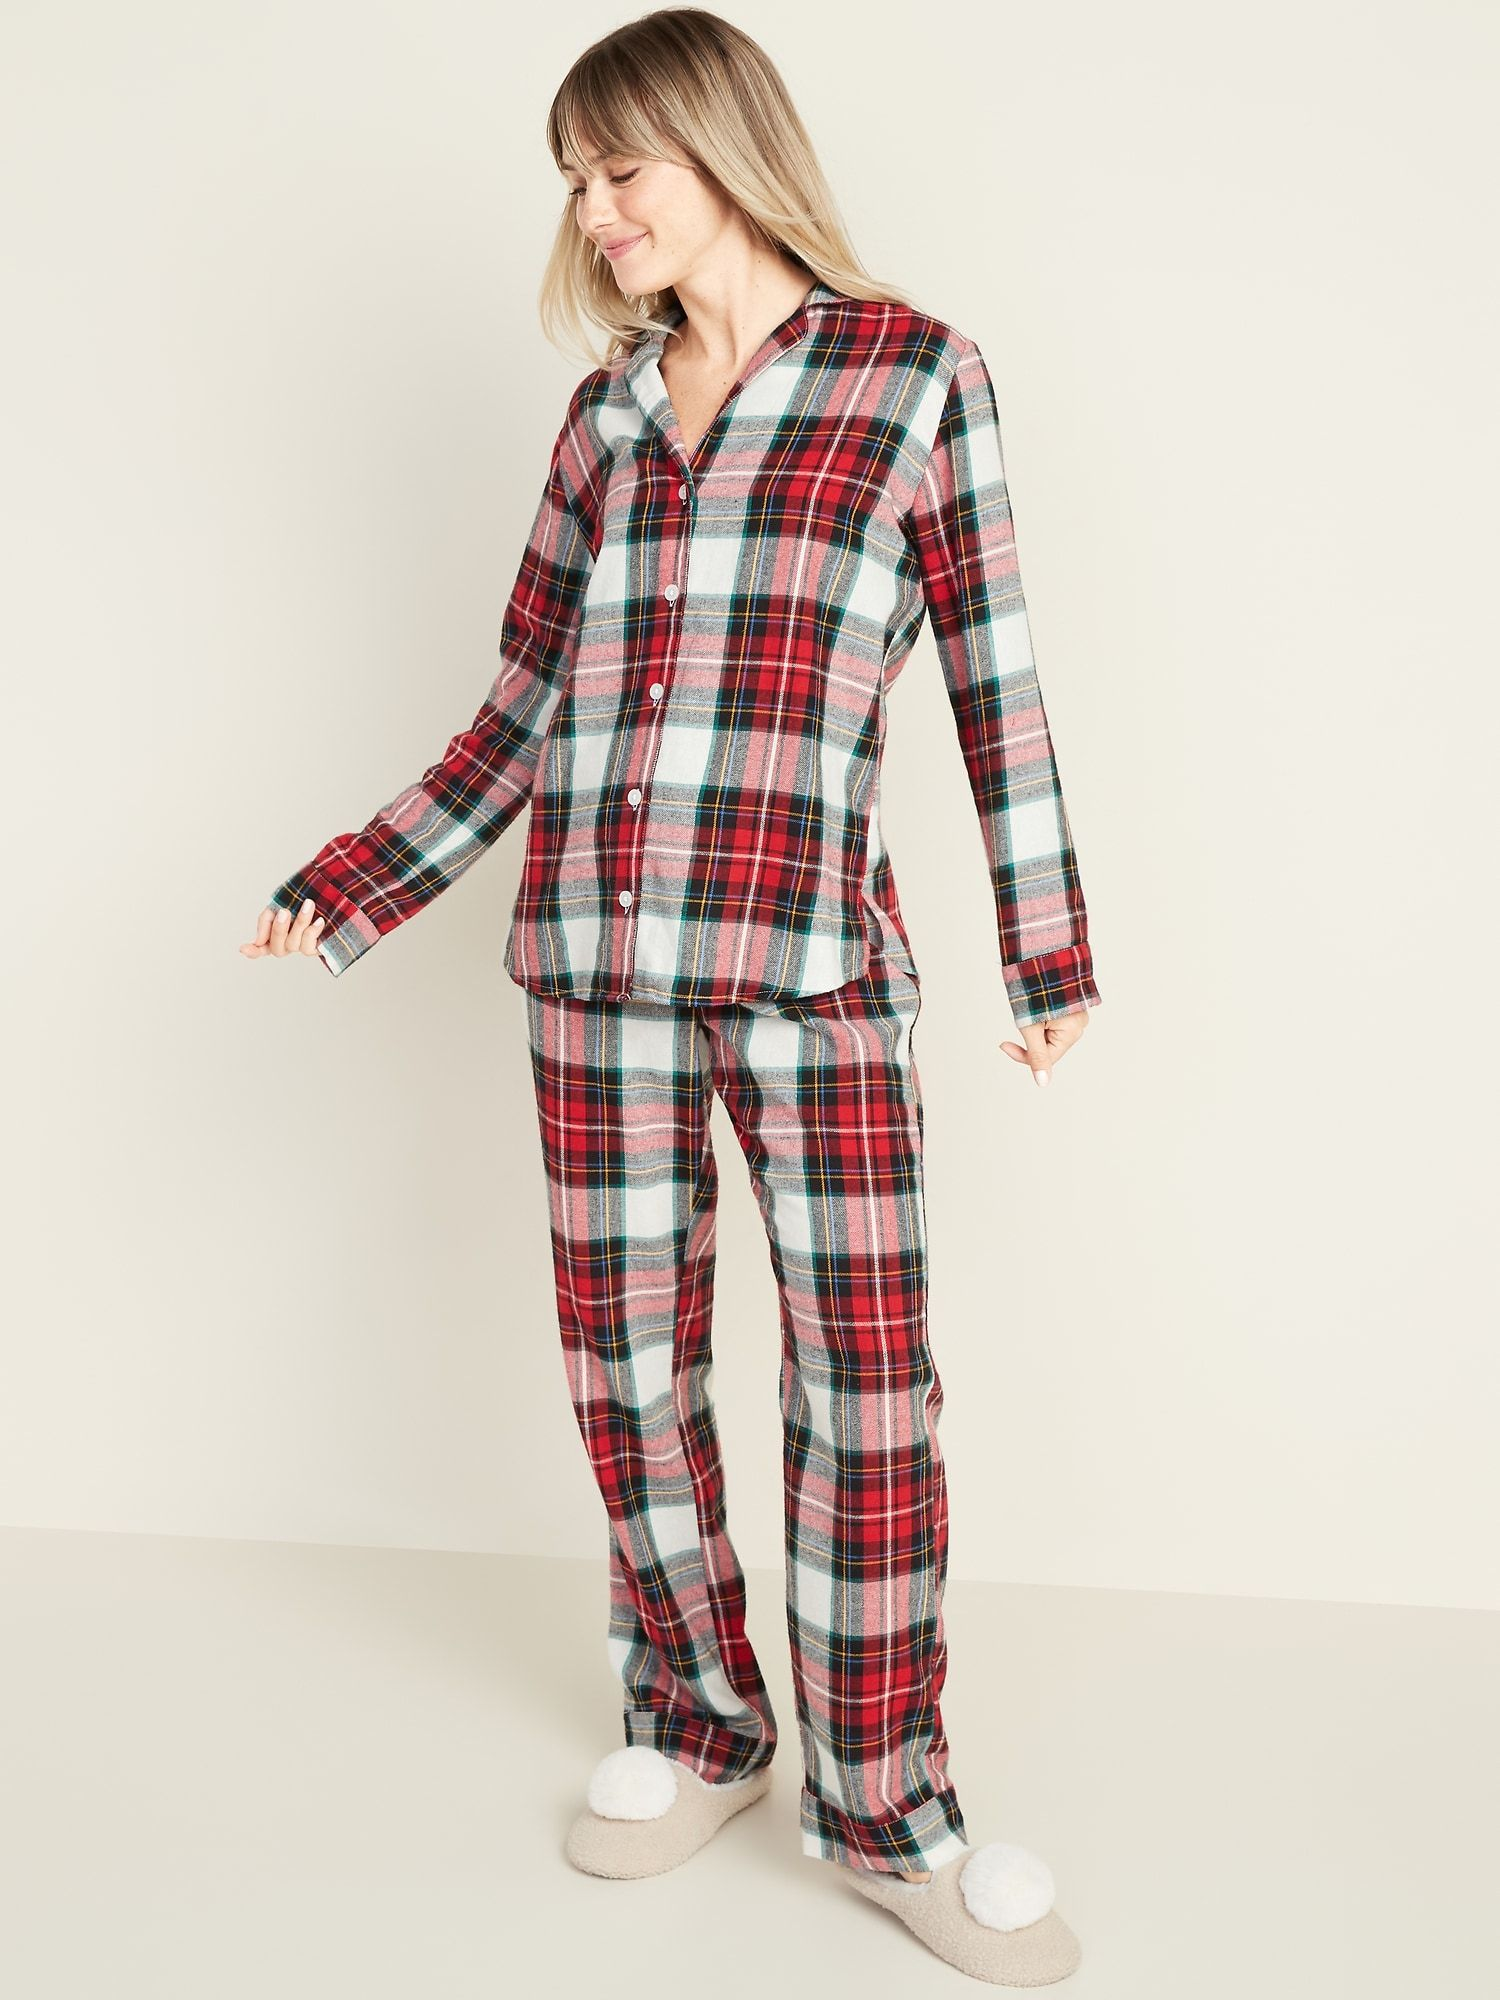 Patterned Flannel Pajama Set for Women Pajamas women